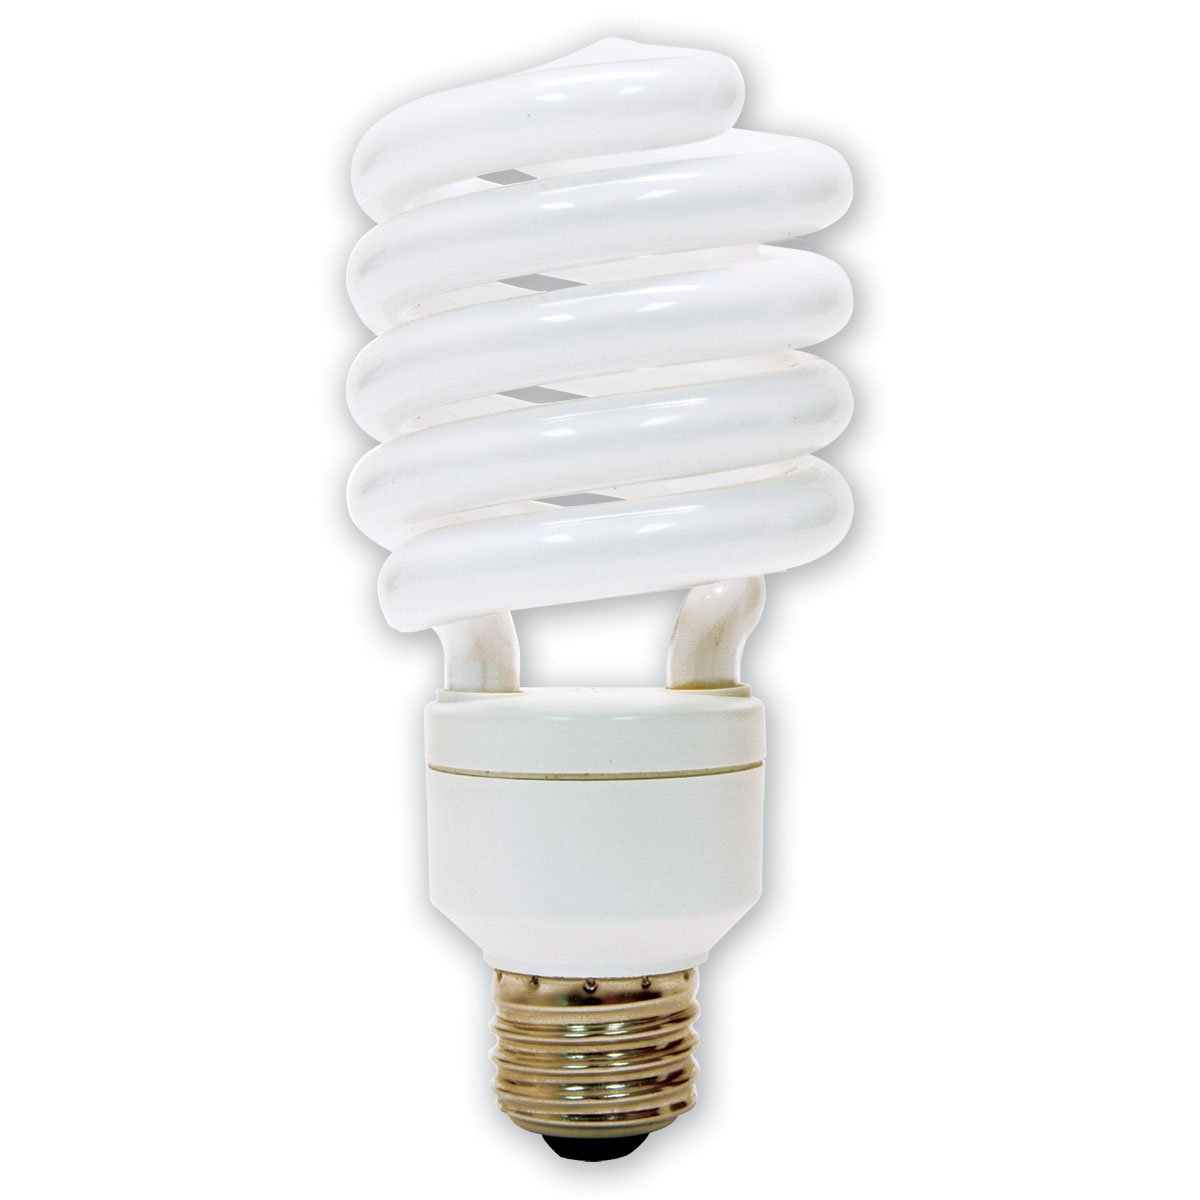 lamps may to a garage curly lights energysaver versions or save fluorescent have swirly compact long energy you hires cfls the choices money department bulb light lighting are of kitchen simply tube already in